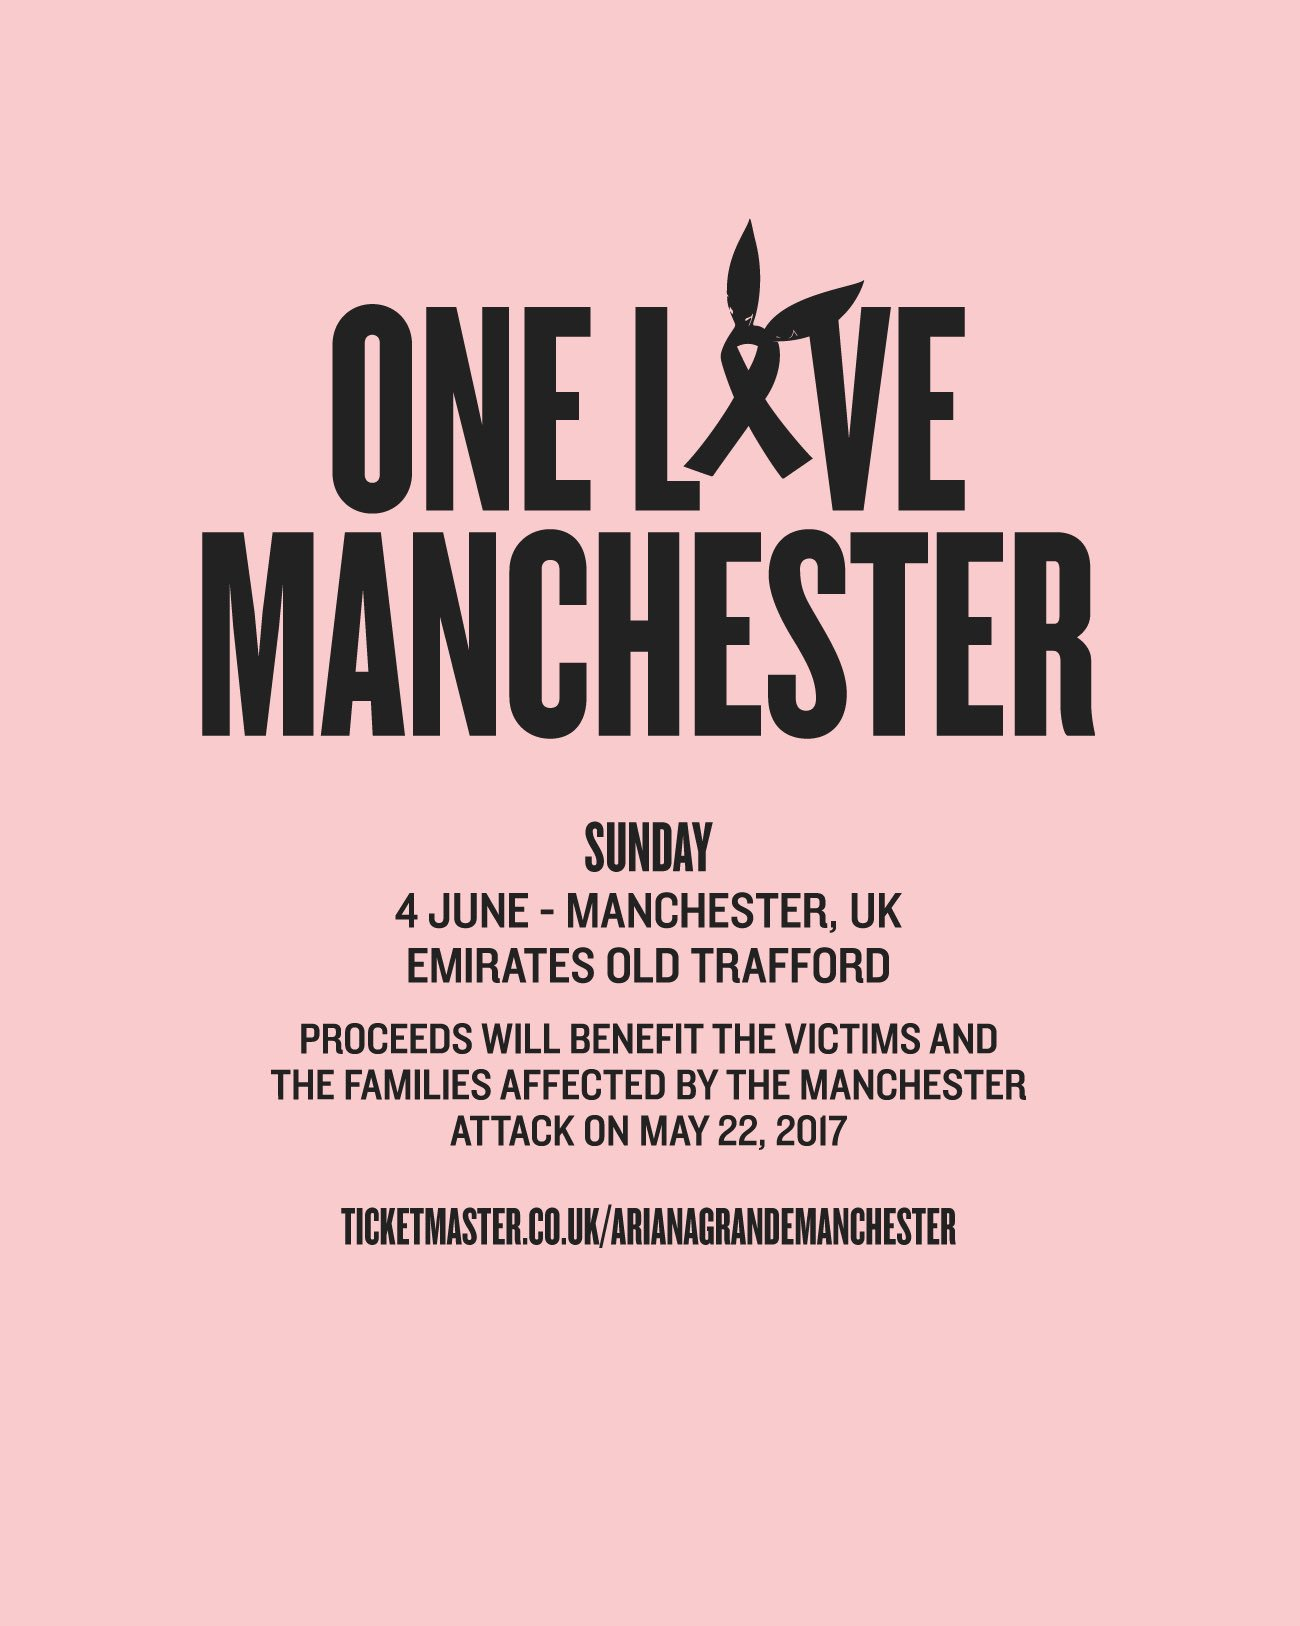 We all need to do everything we can to support. #OneLoveManchester https://t.co/TtwO2Bo1Rn https://t.co/hMa6zSHtv8